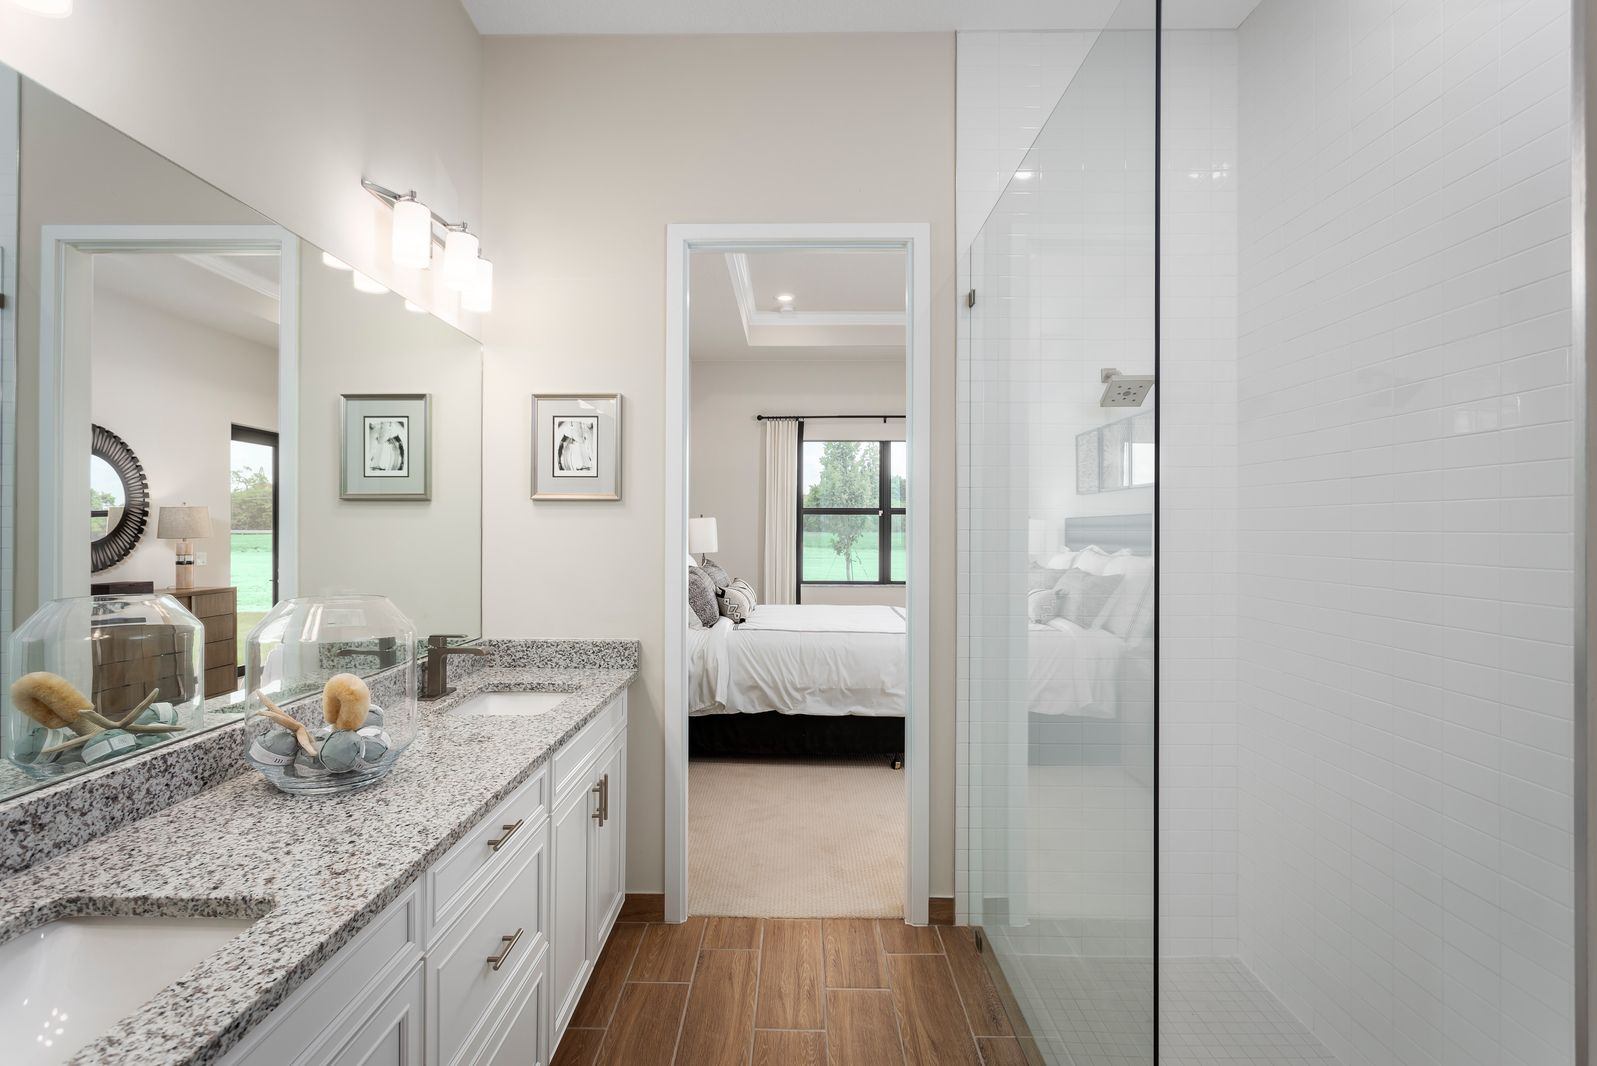 Bathroom featured in the St Marten Villas By Ryan Homes in Broward County-Ft. Lauderdale, FL